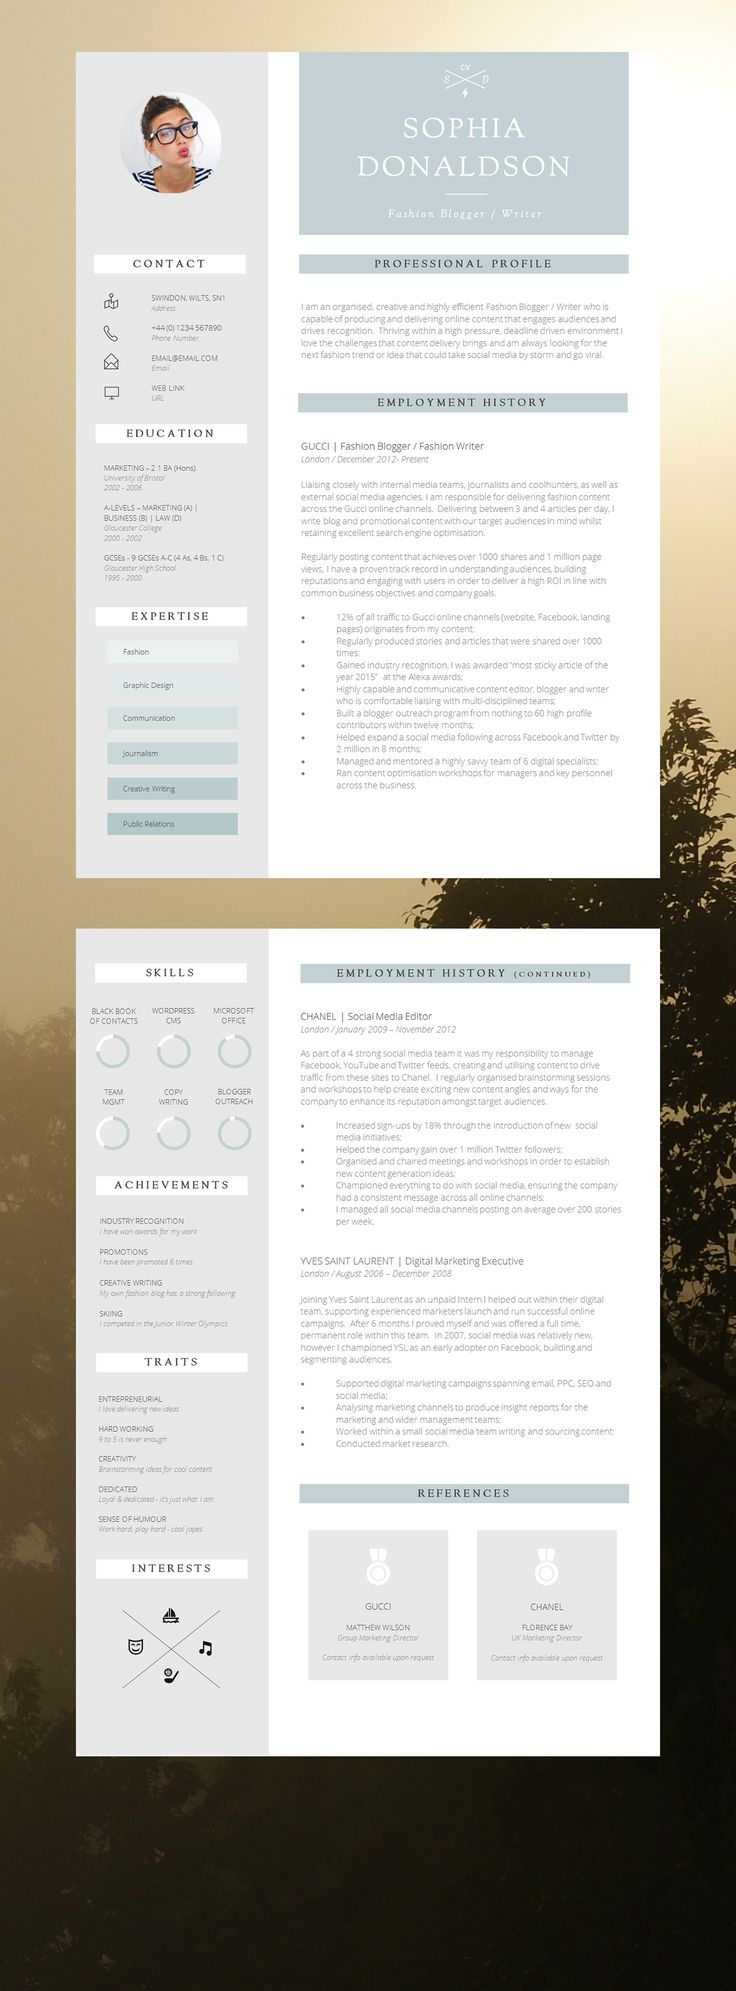 318 best Originele cv\'s images on Pinterest | Page layout, Resume ...